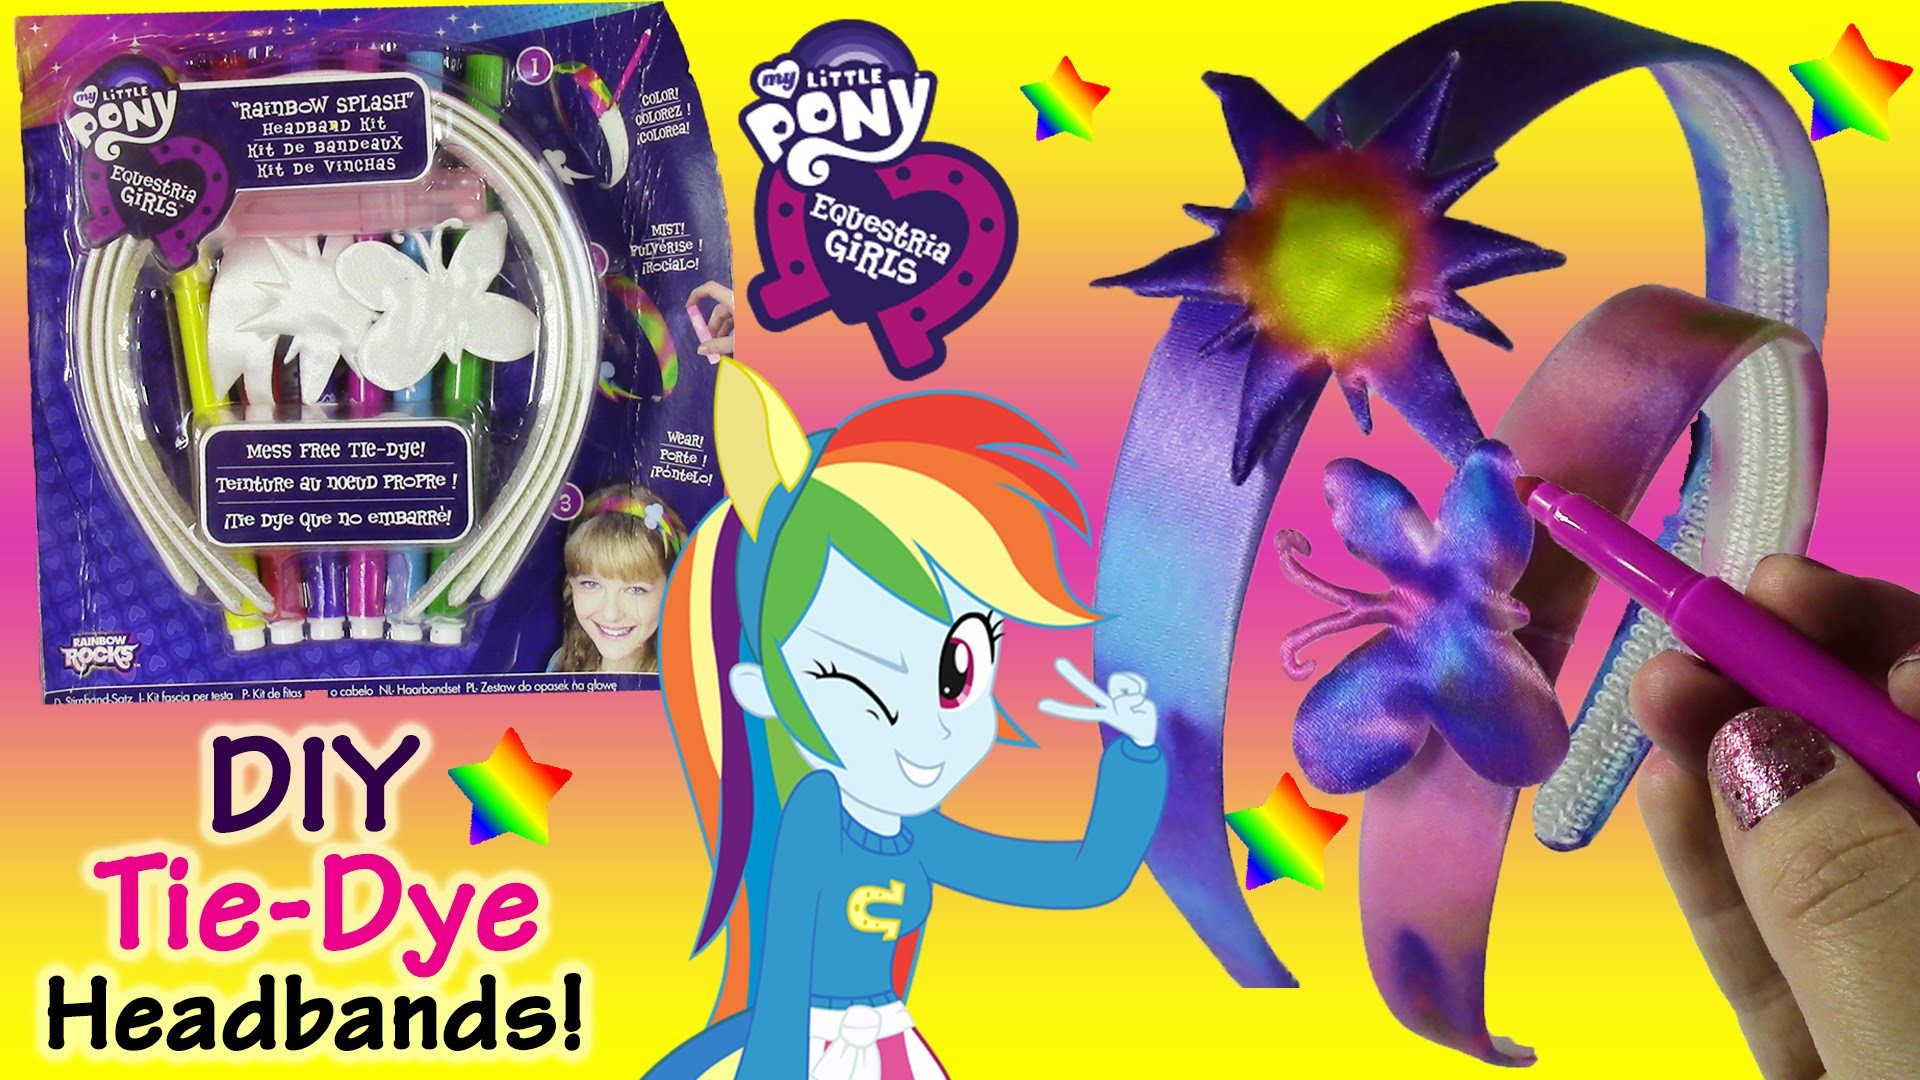 MLP Equestria Girls DIY Rainbow Splash Tie-Dye Headband Kit! Color & Spray with Water! Lip Gloss!